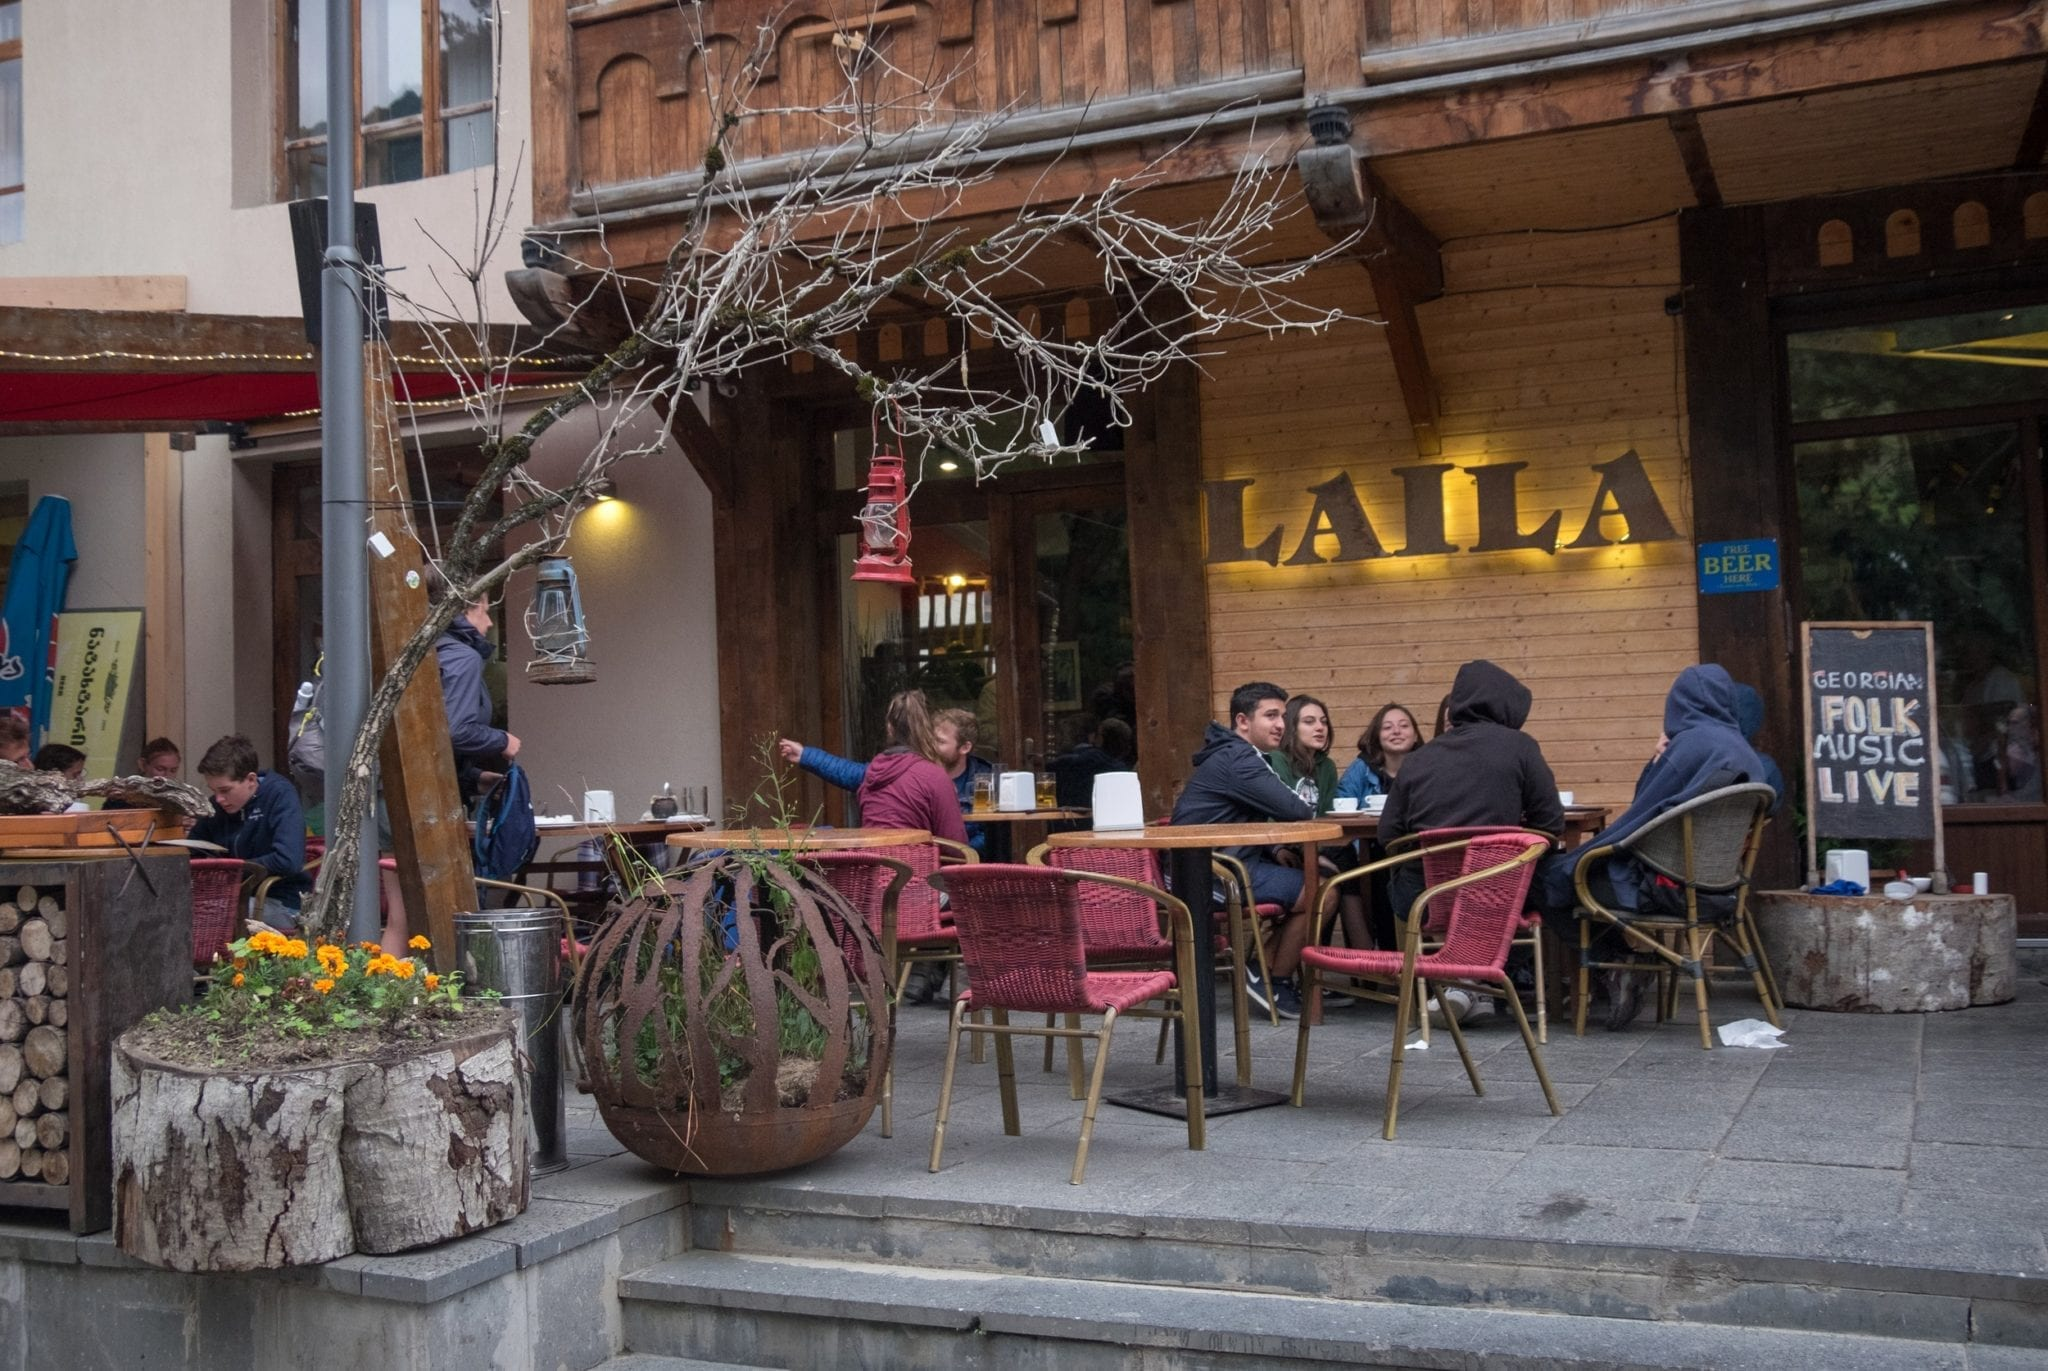 Travelers sitting outside the Laila Cad and restaurant, bundled up in the chill, in Mestia, Svaneti.